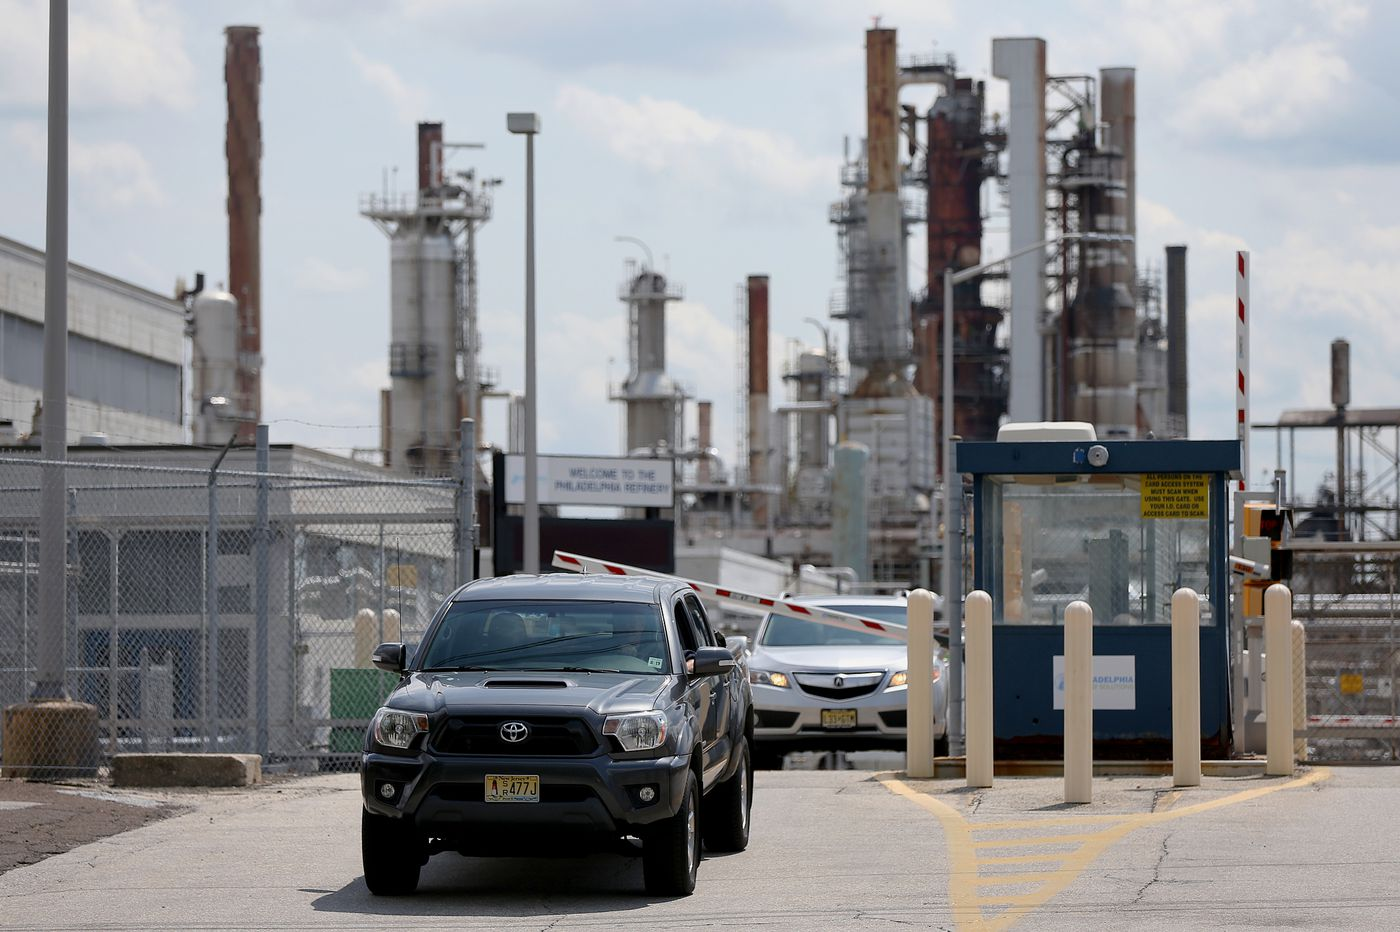 Philly refinery's former owner, Sunoco, files formal objection ahead of bankruptcy sale